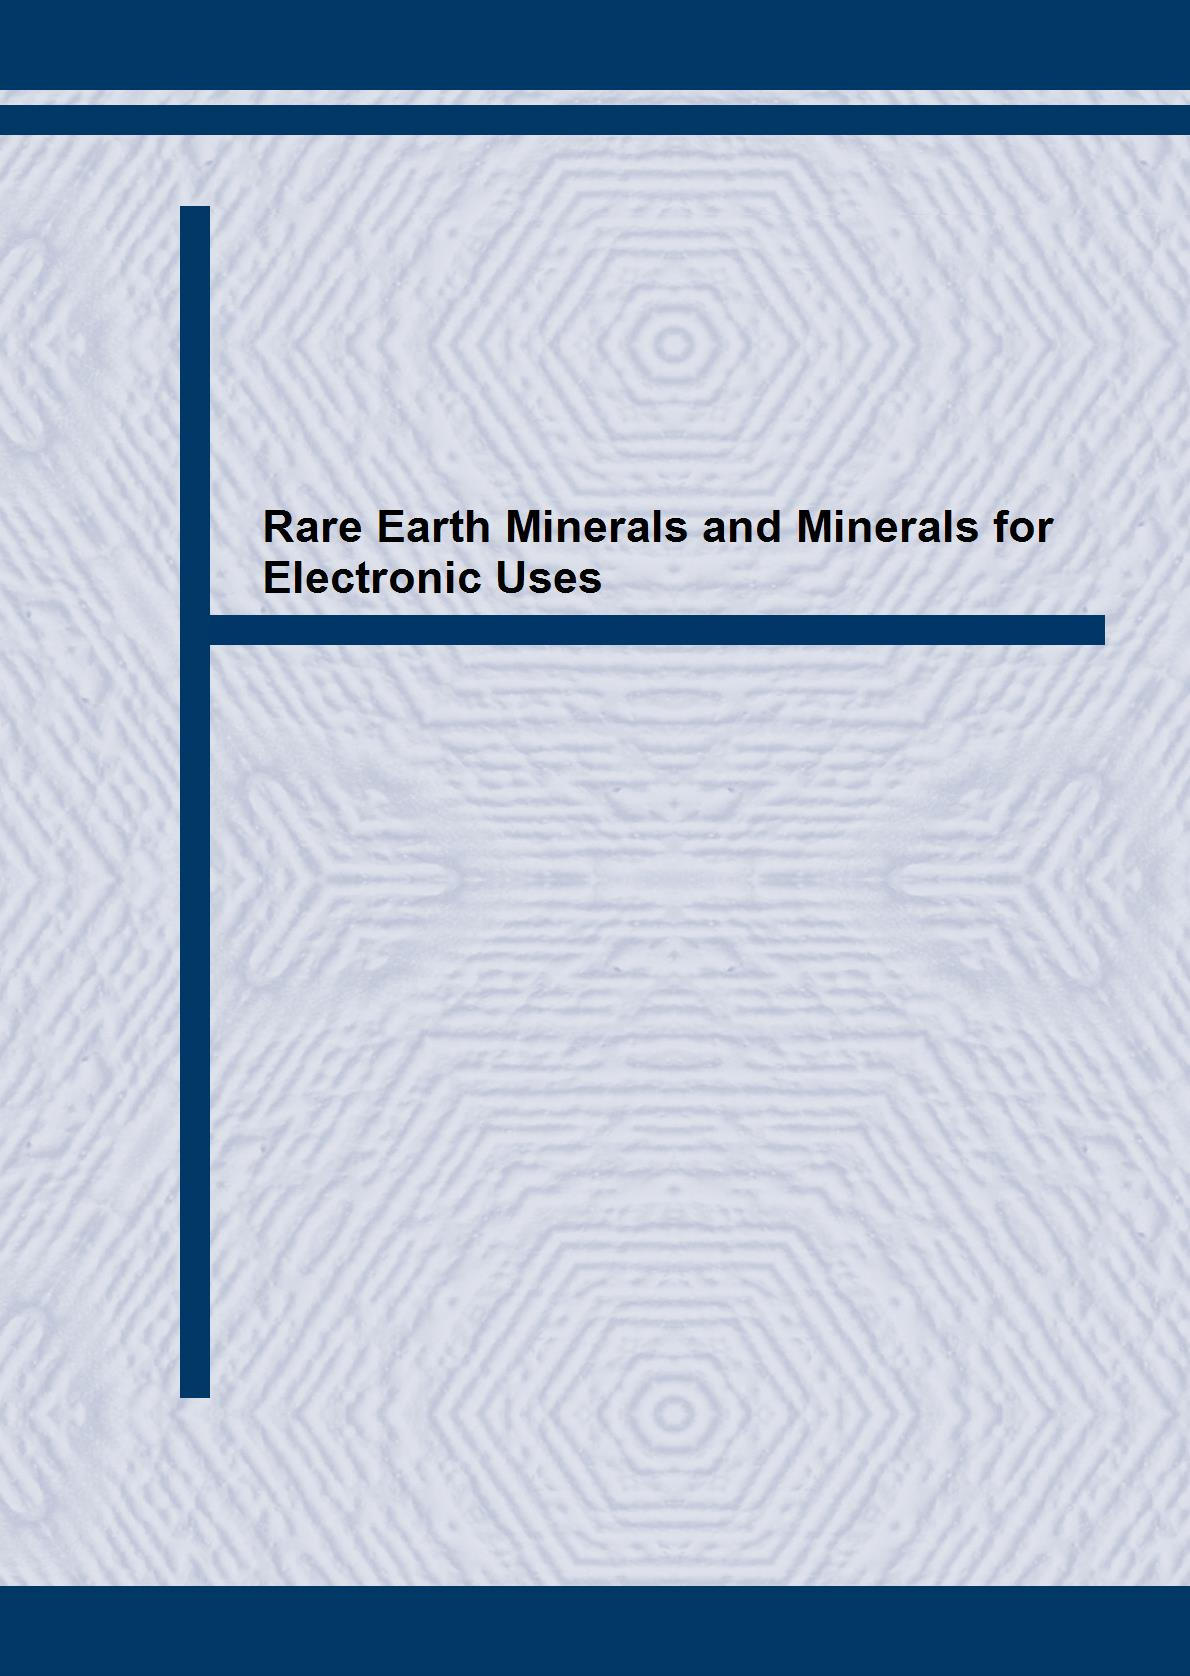 Rare Earth Minerals and Minerals for Electronic Uses